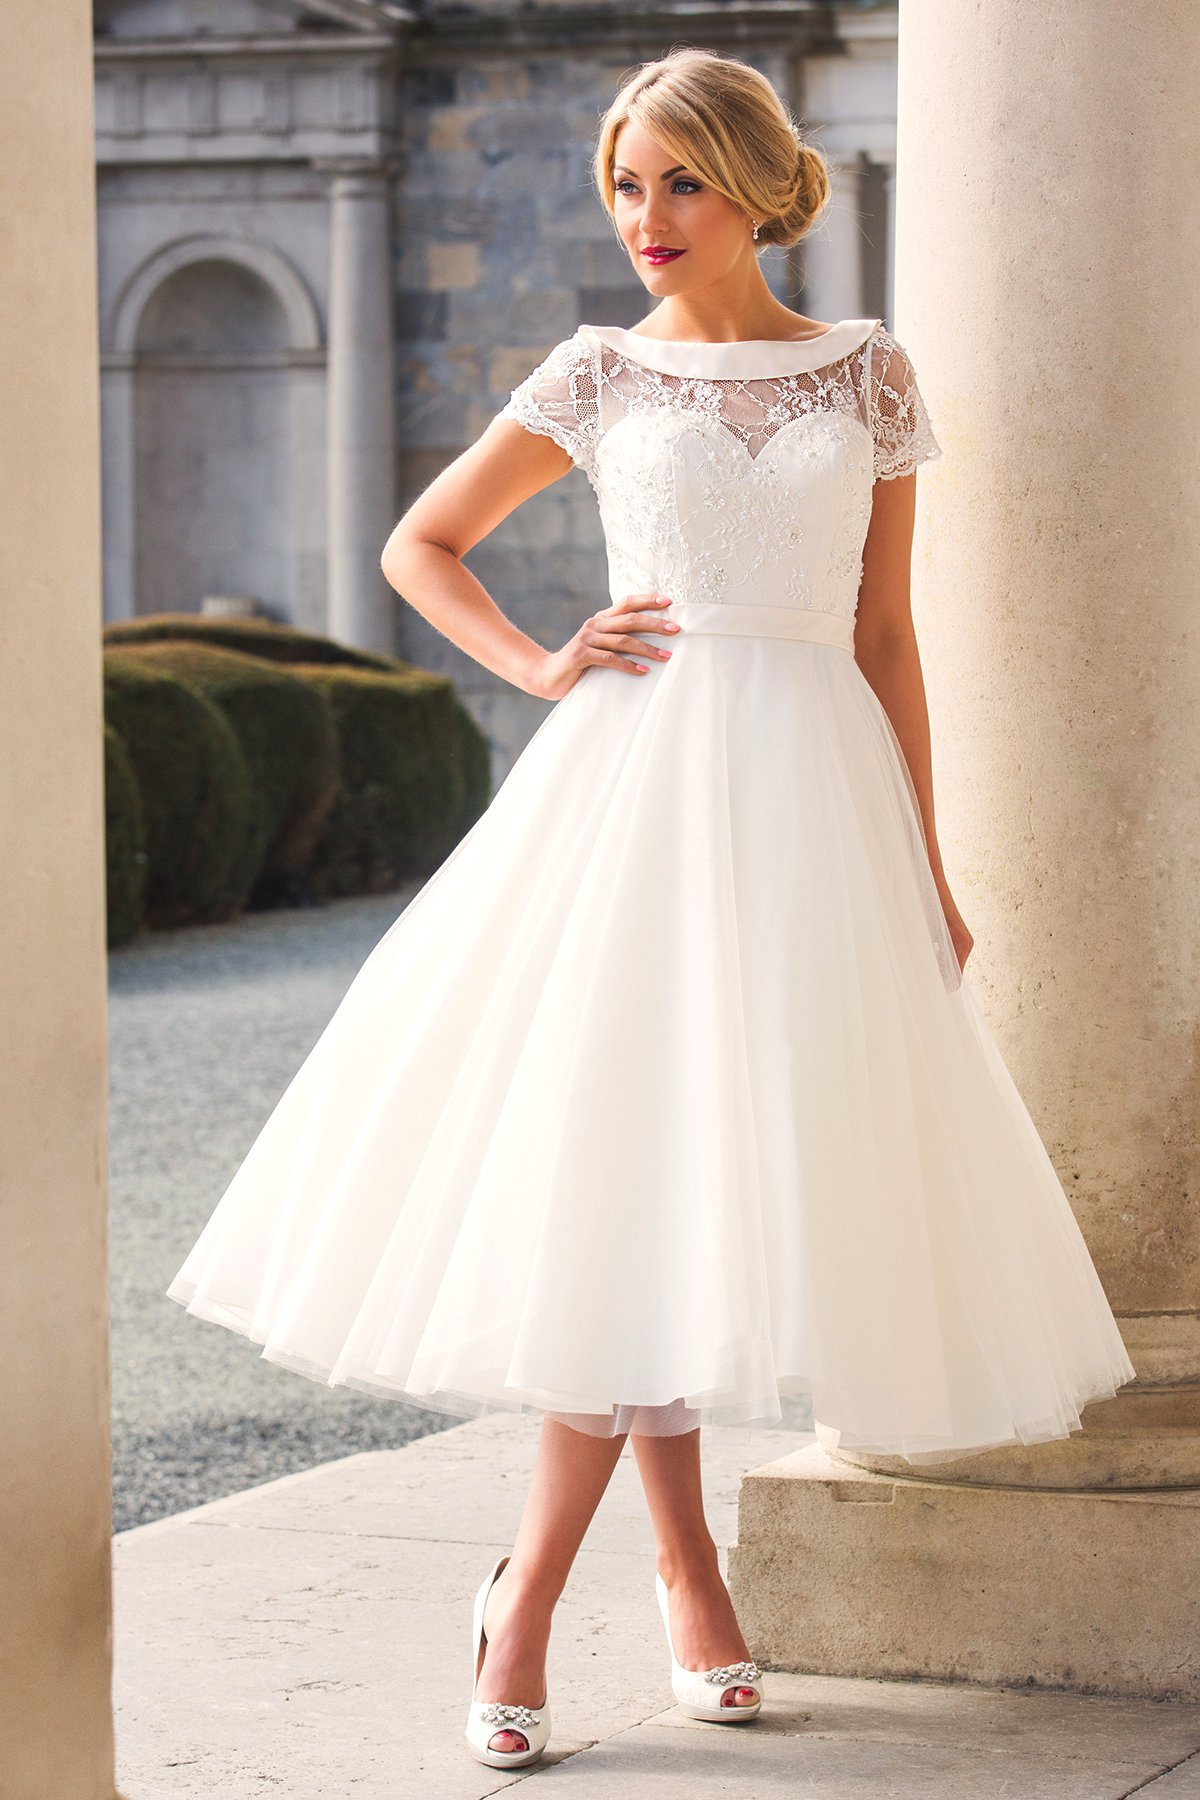 Special day wedding dresses cheap wedding dresses for Brand name wedding dresses